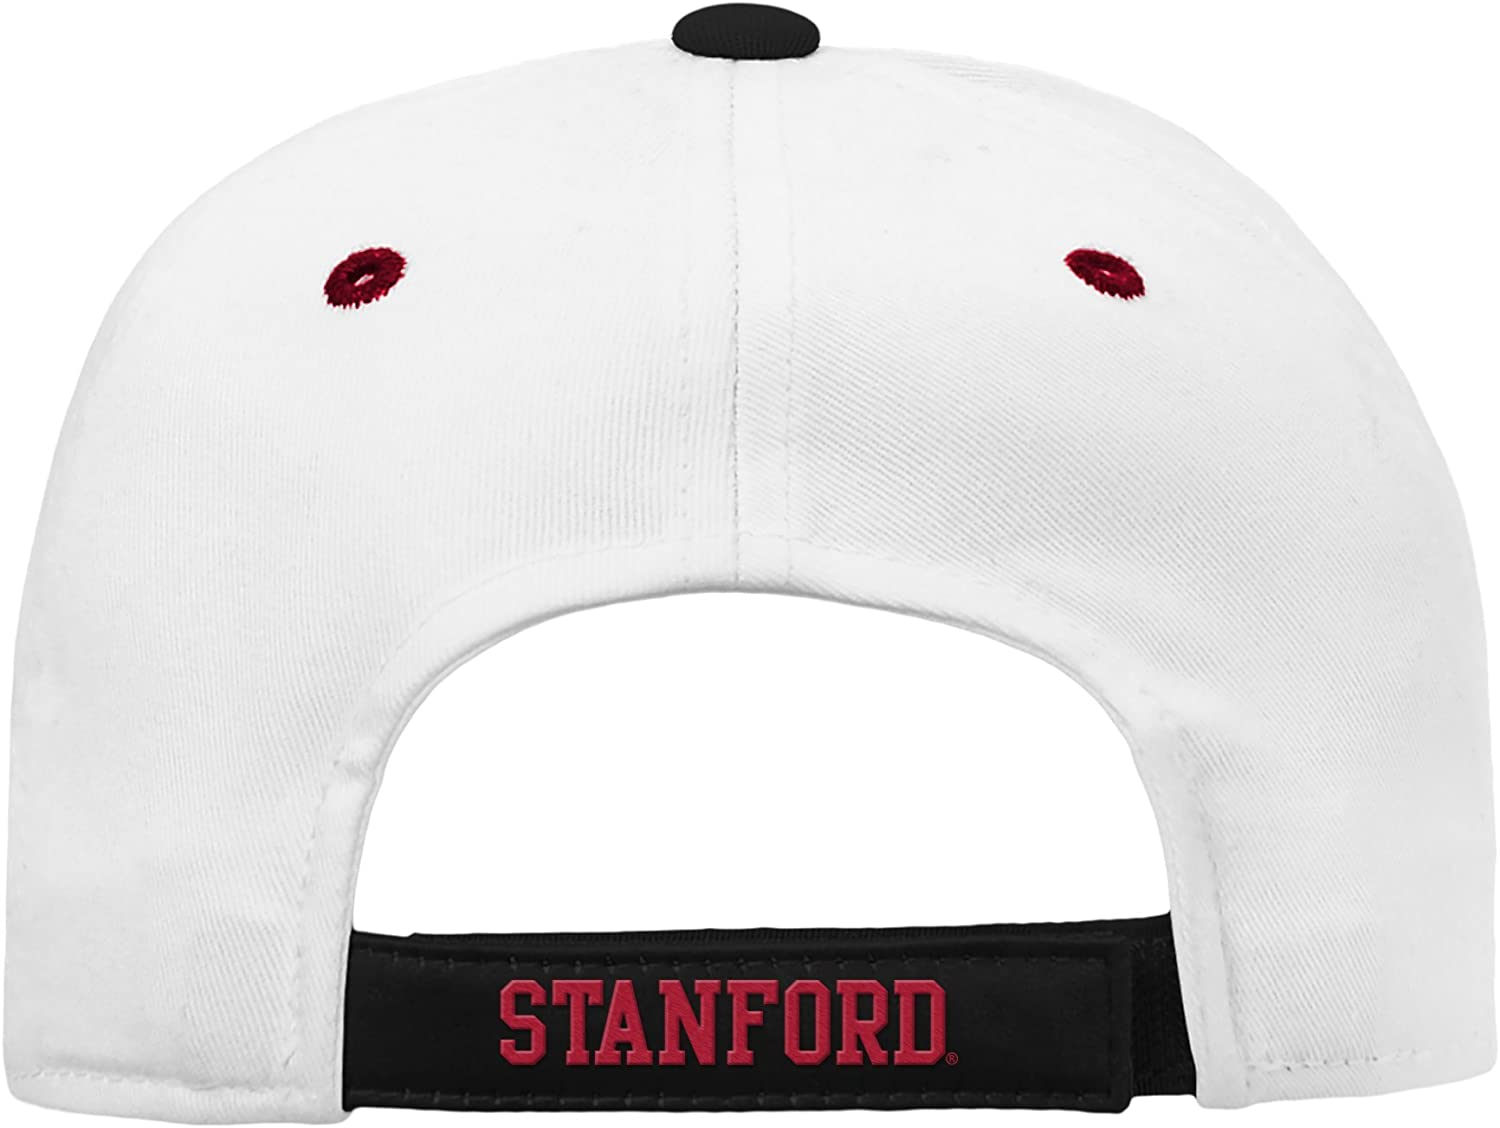 Large NCAA Stanford Cardinal Youth Boys 8-20 Tee /& Hat Set 14-16 Assorted Colors